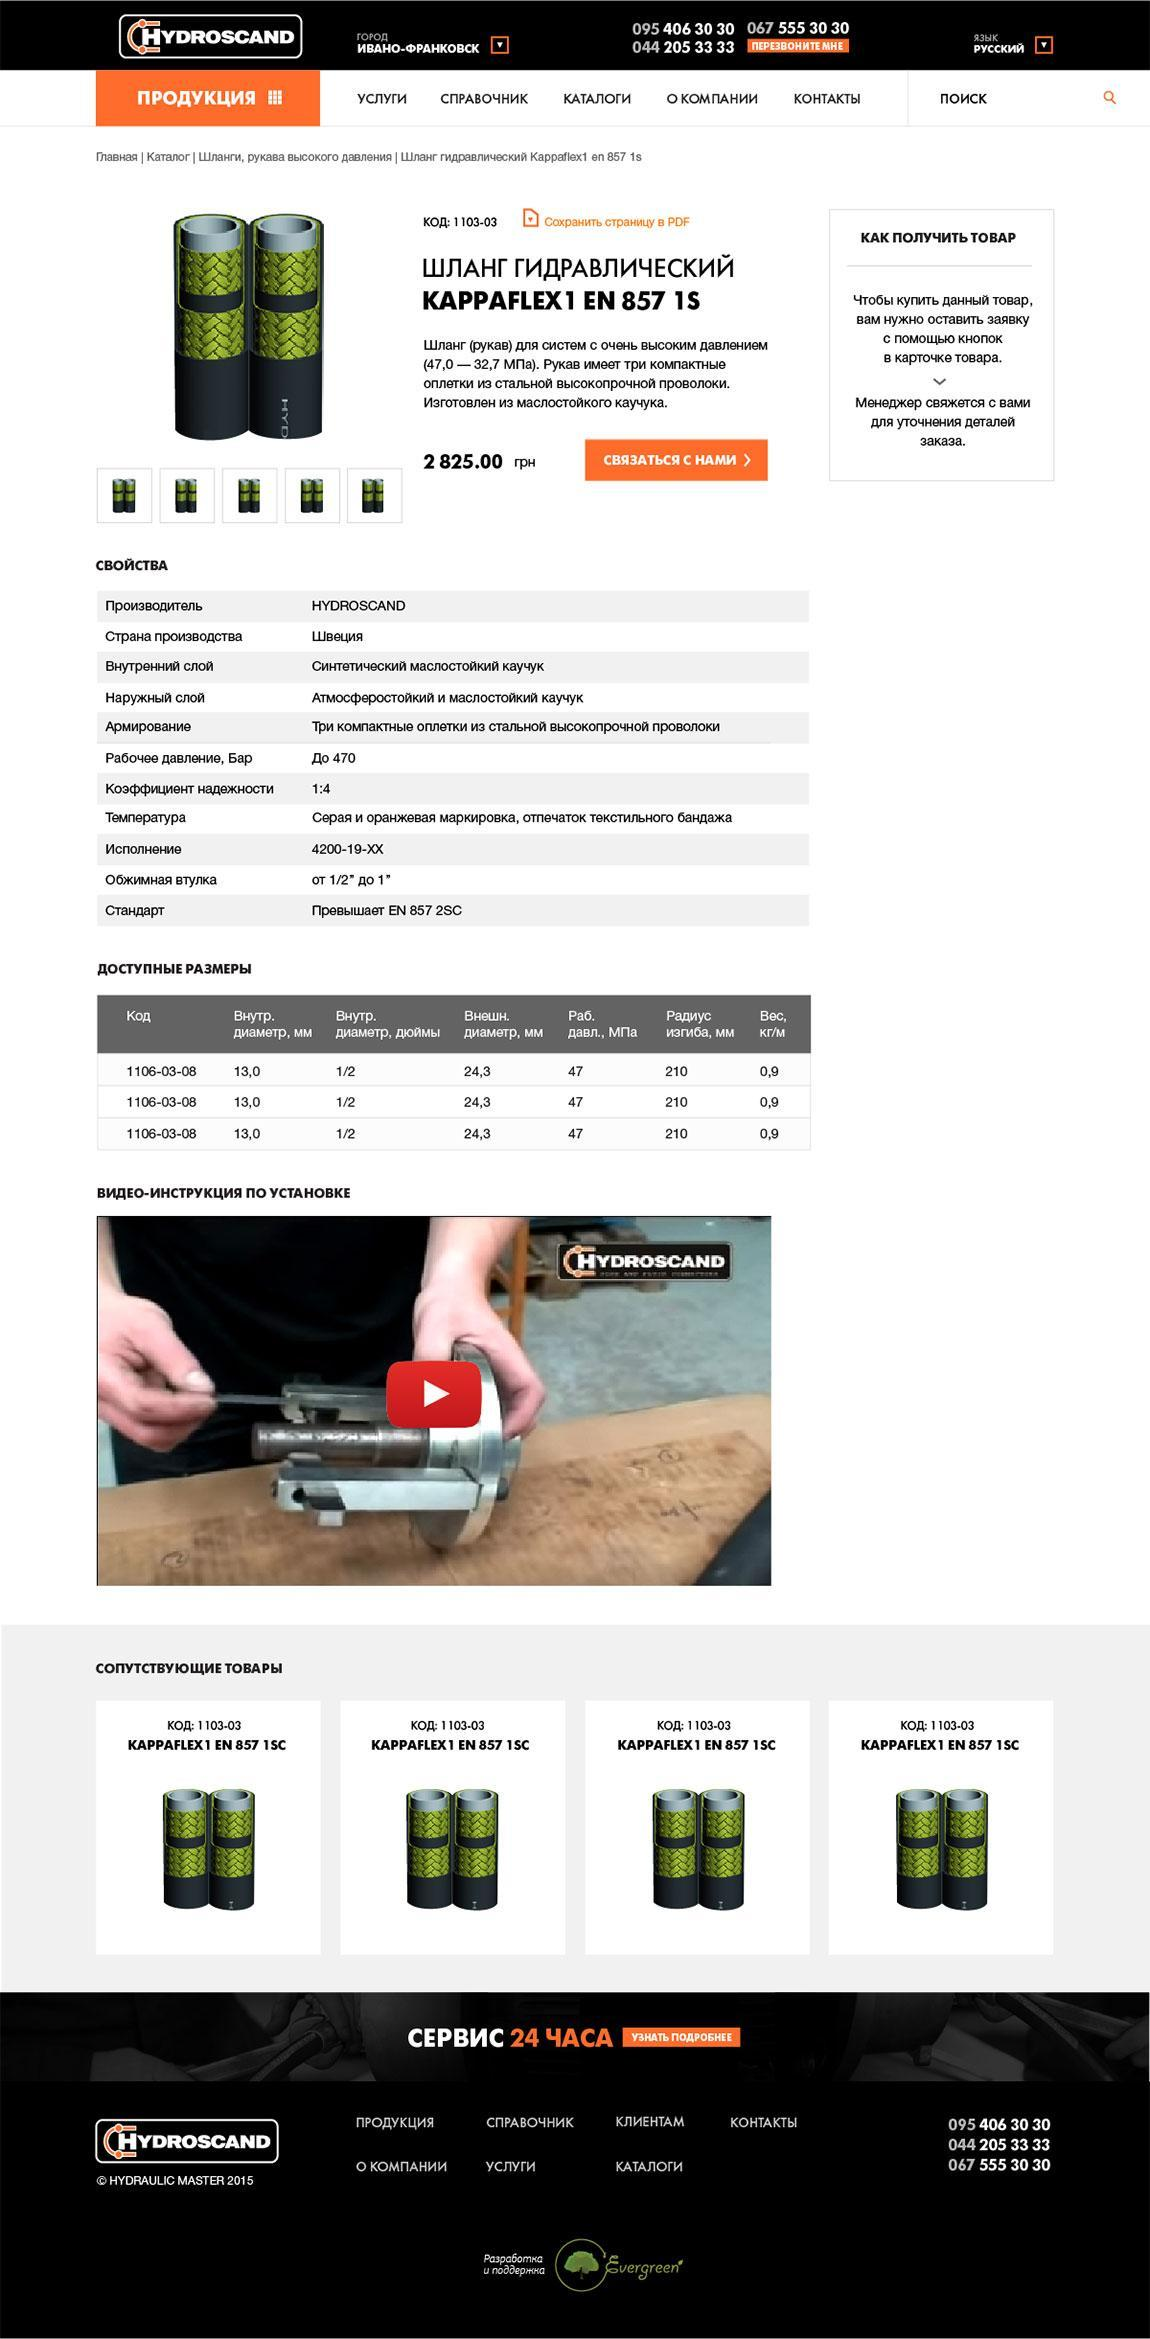 online-catalogue for hydraulic parts, hoses, and other parts for machines and engines | Evergreen projects 8